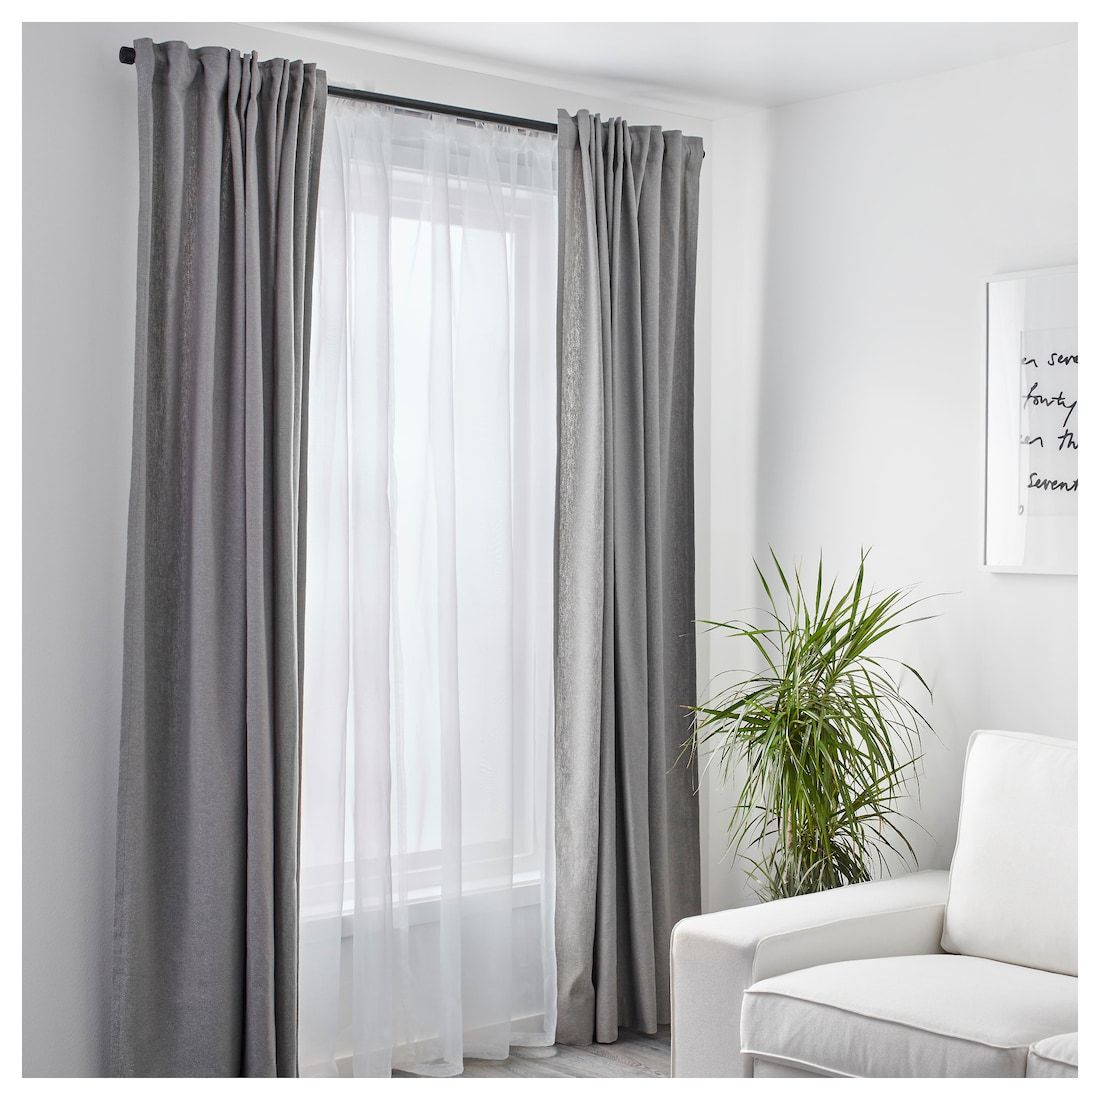 Ikea Us Furniture And Home Furnishings Curtains Living Curtains Living Room Apartment Living Room #white #drapes #in #living #room